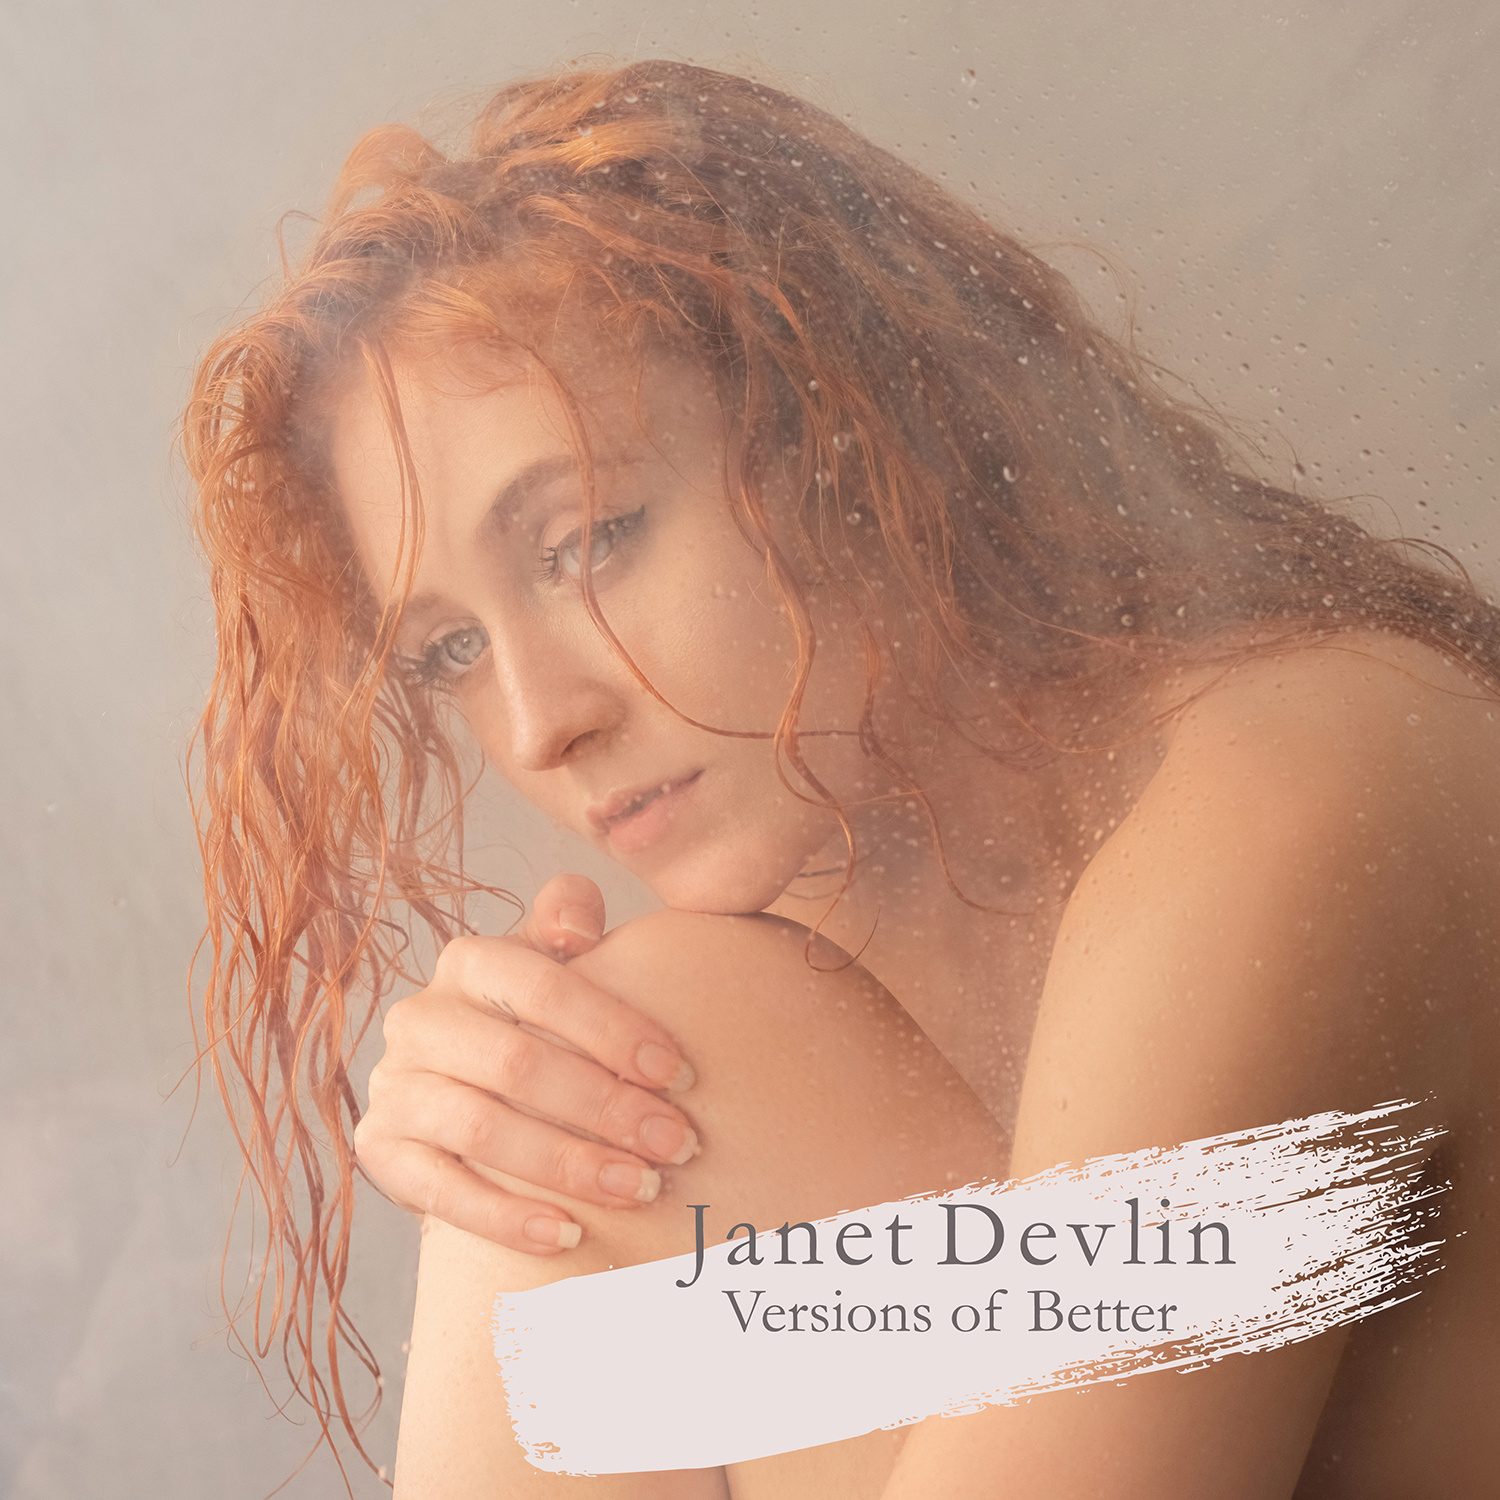 Janet Devlin - Versions of Better - Cover Art